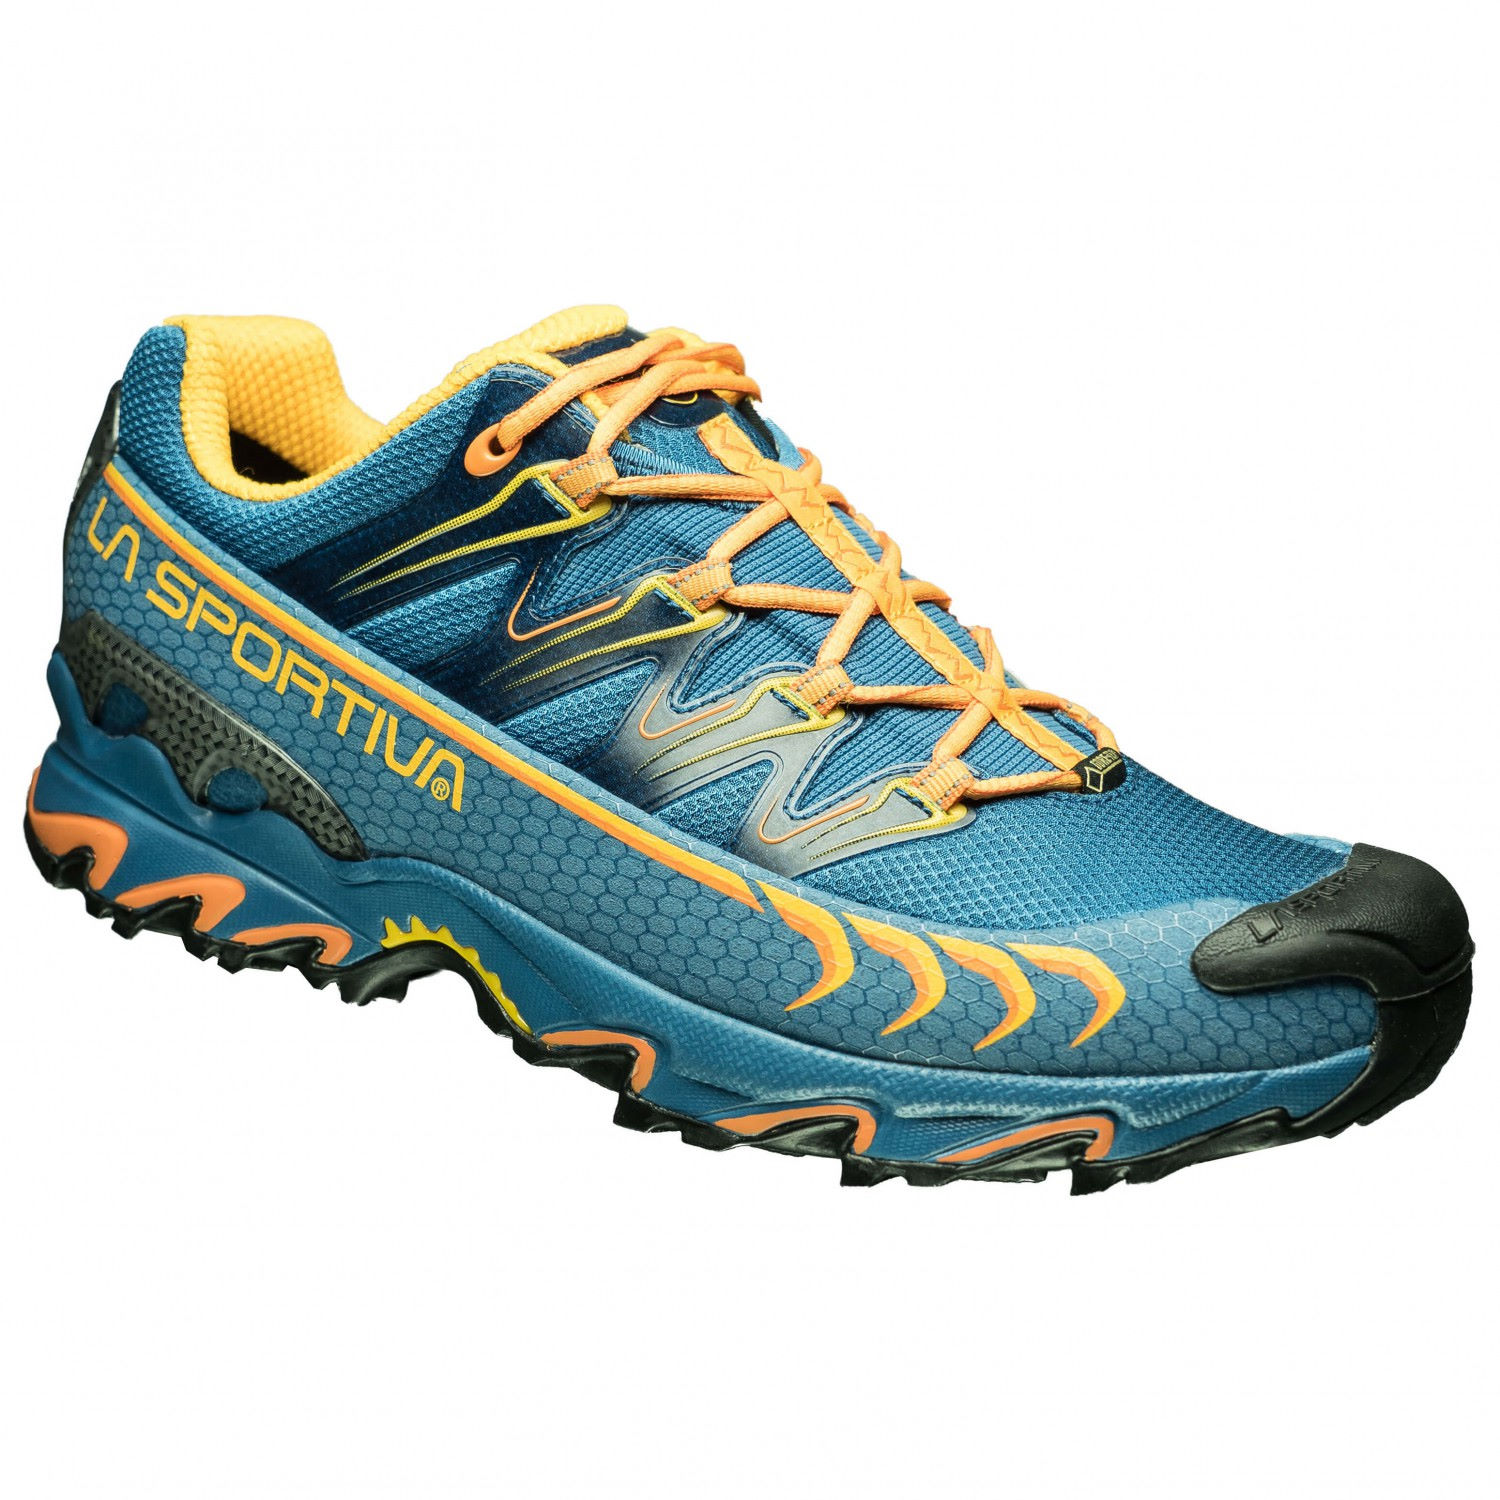 La Sportiva Running Shoes Uk